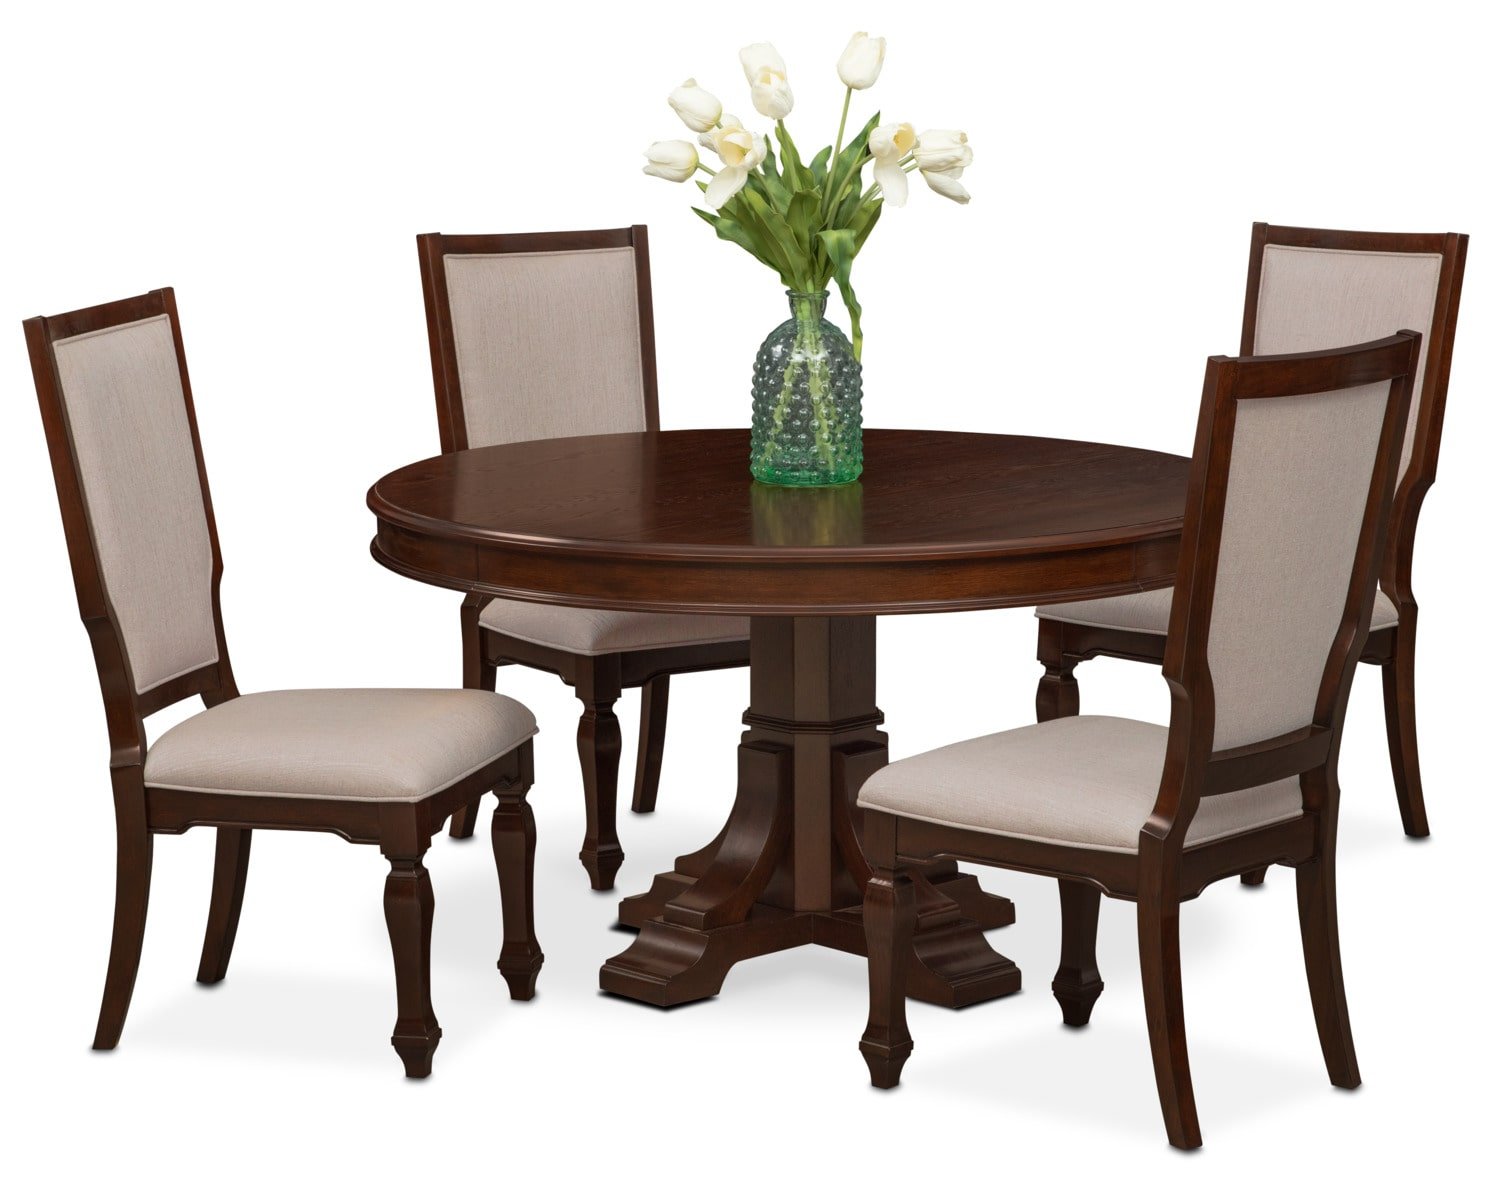 Dining Room Furniture - Vienna Round Dining Table and 4 Upholstered Side Chairs - Merlot